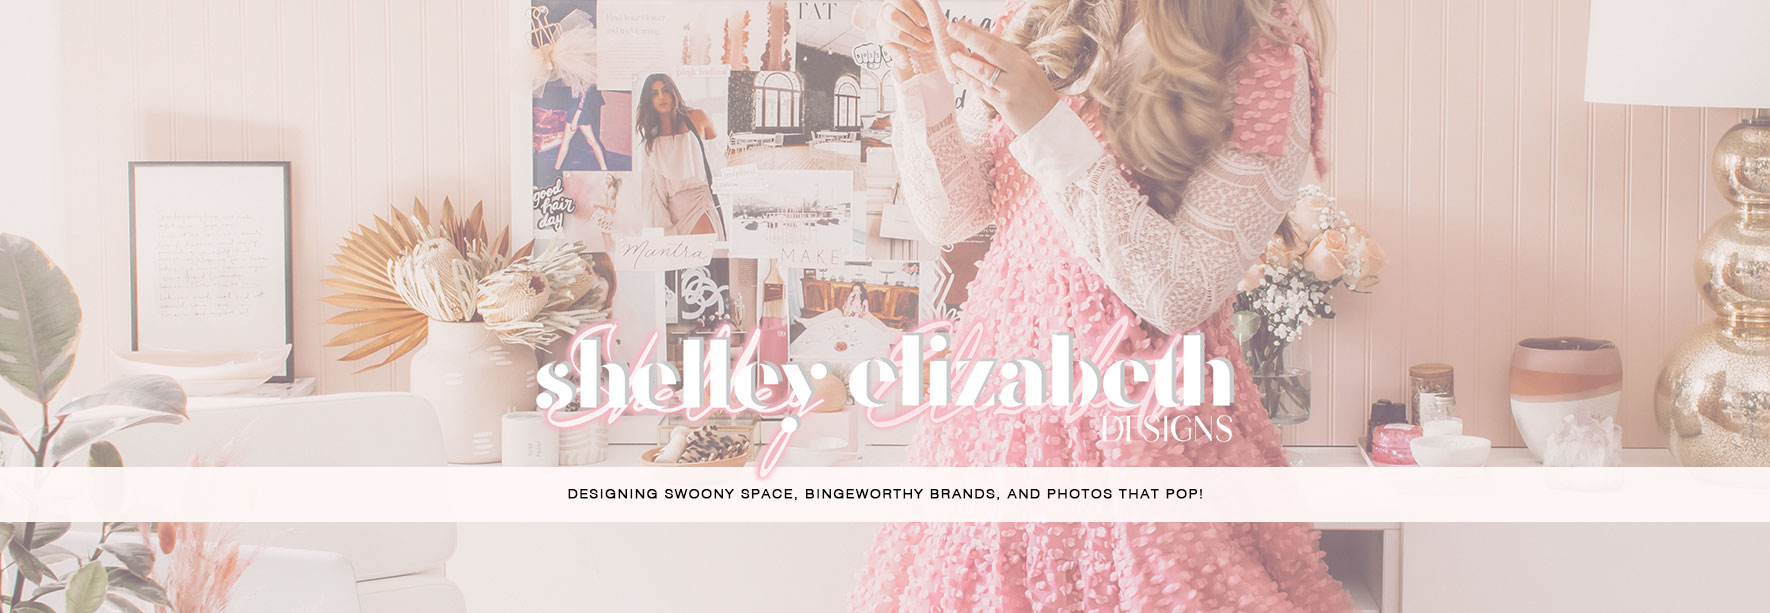 Shelley Elizabeth Designs designer and Creative Director Website Home Page Image